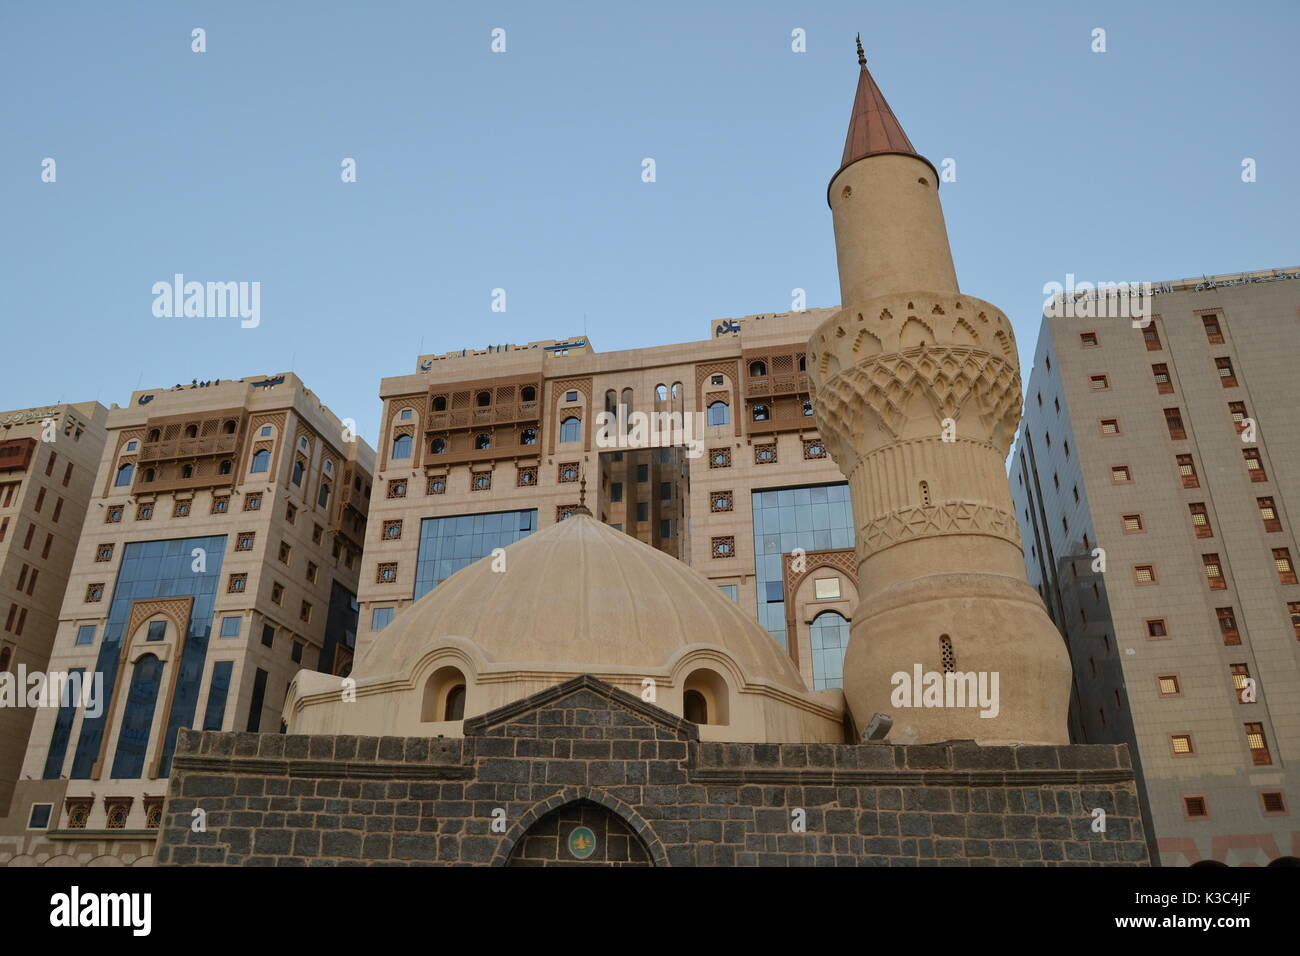 Omer mosque in madina - Stock Image